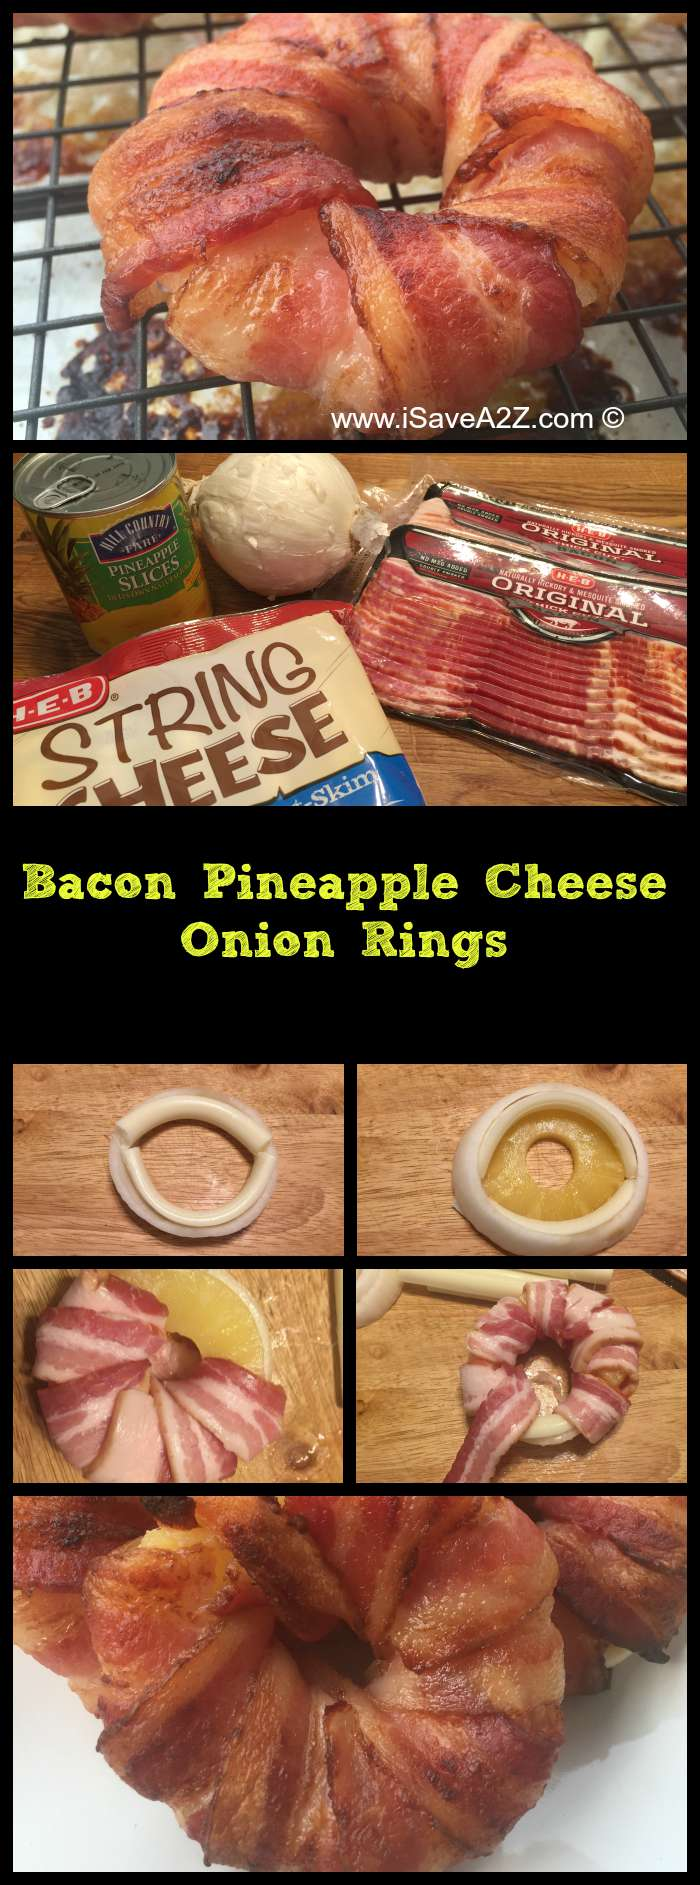 Bacon Pineapple Cheese Onion Rings Recipe